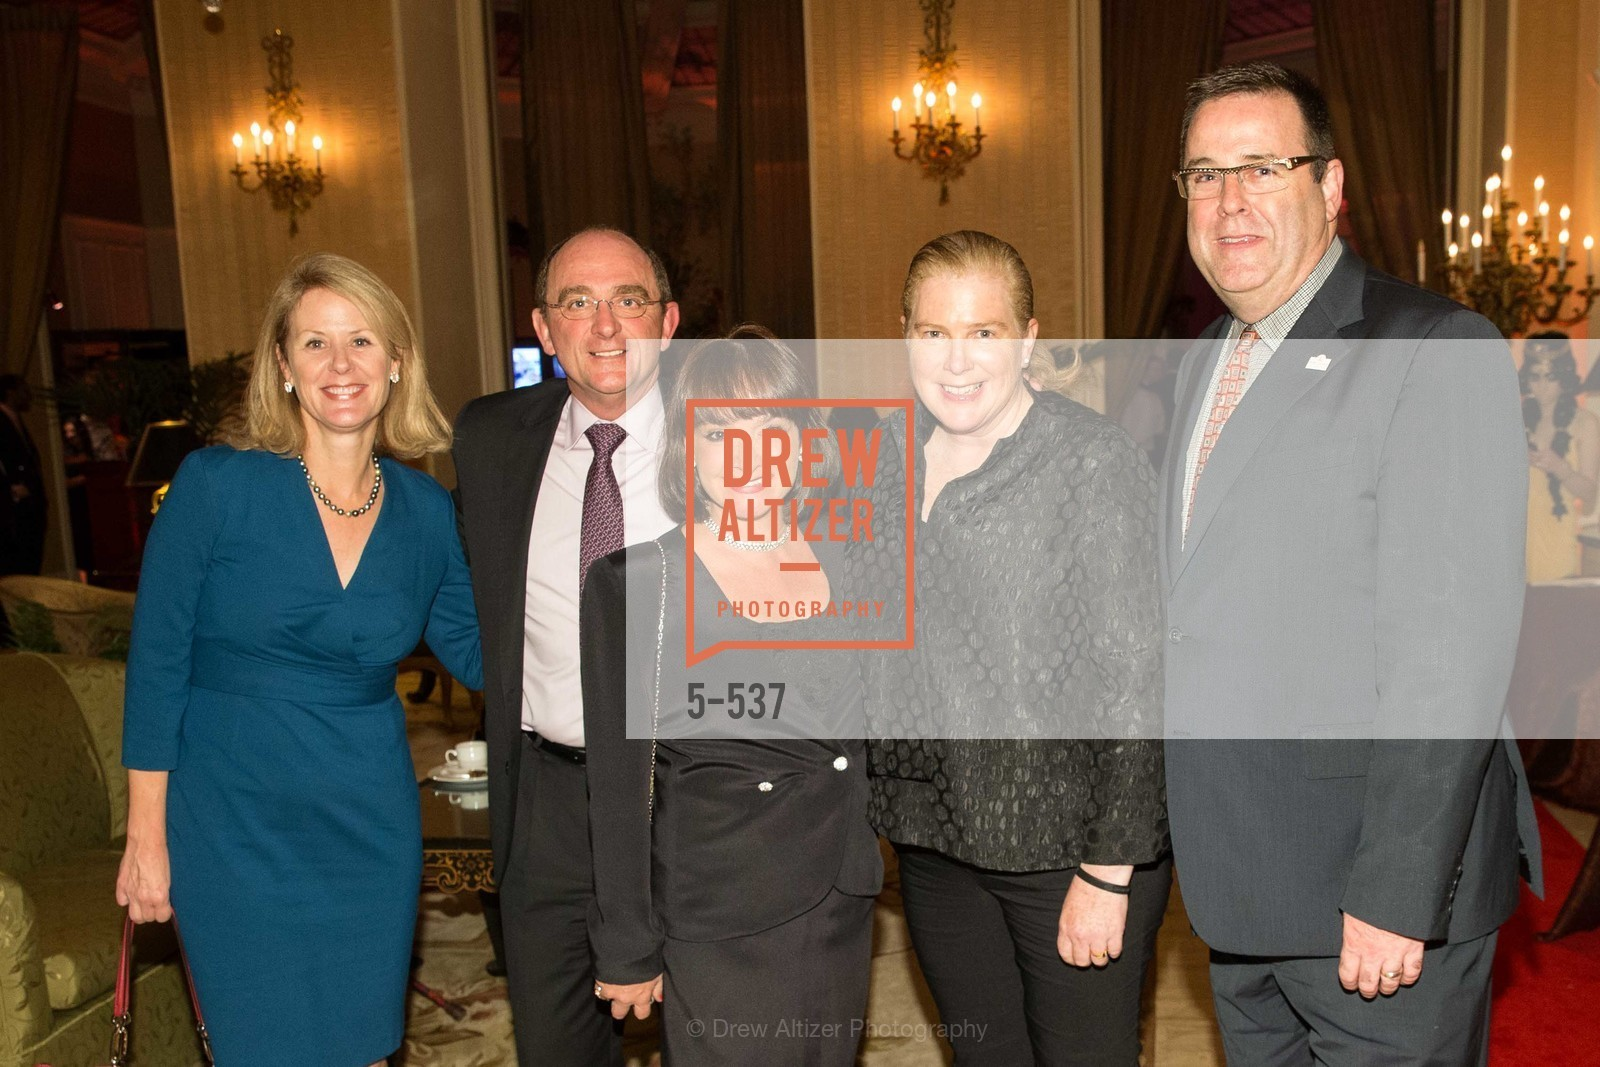 Kelly Powers, Tom Klein, Barbara Klein, Joanne Hayes-White, Kevin Carroll, TOP OF THE MARK'S 75TH Anniversary Party, US, November 7th, 2014,Drew Altizer, Drew Altizer Photography, full-service agency, private events, San Francisco photographer, photographer california